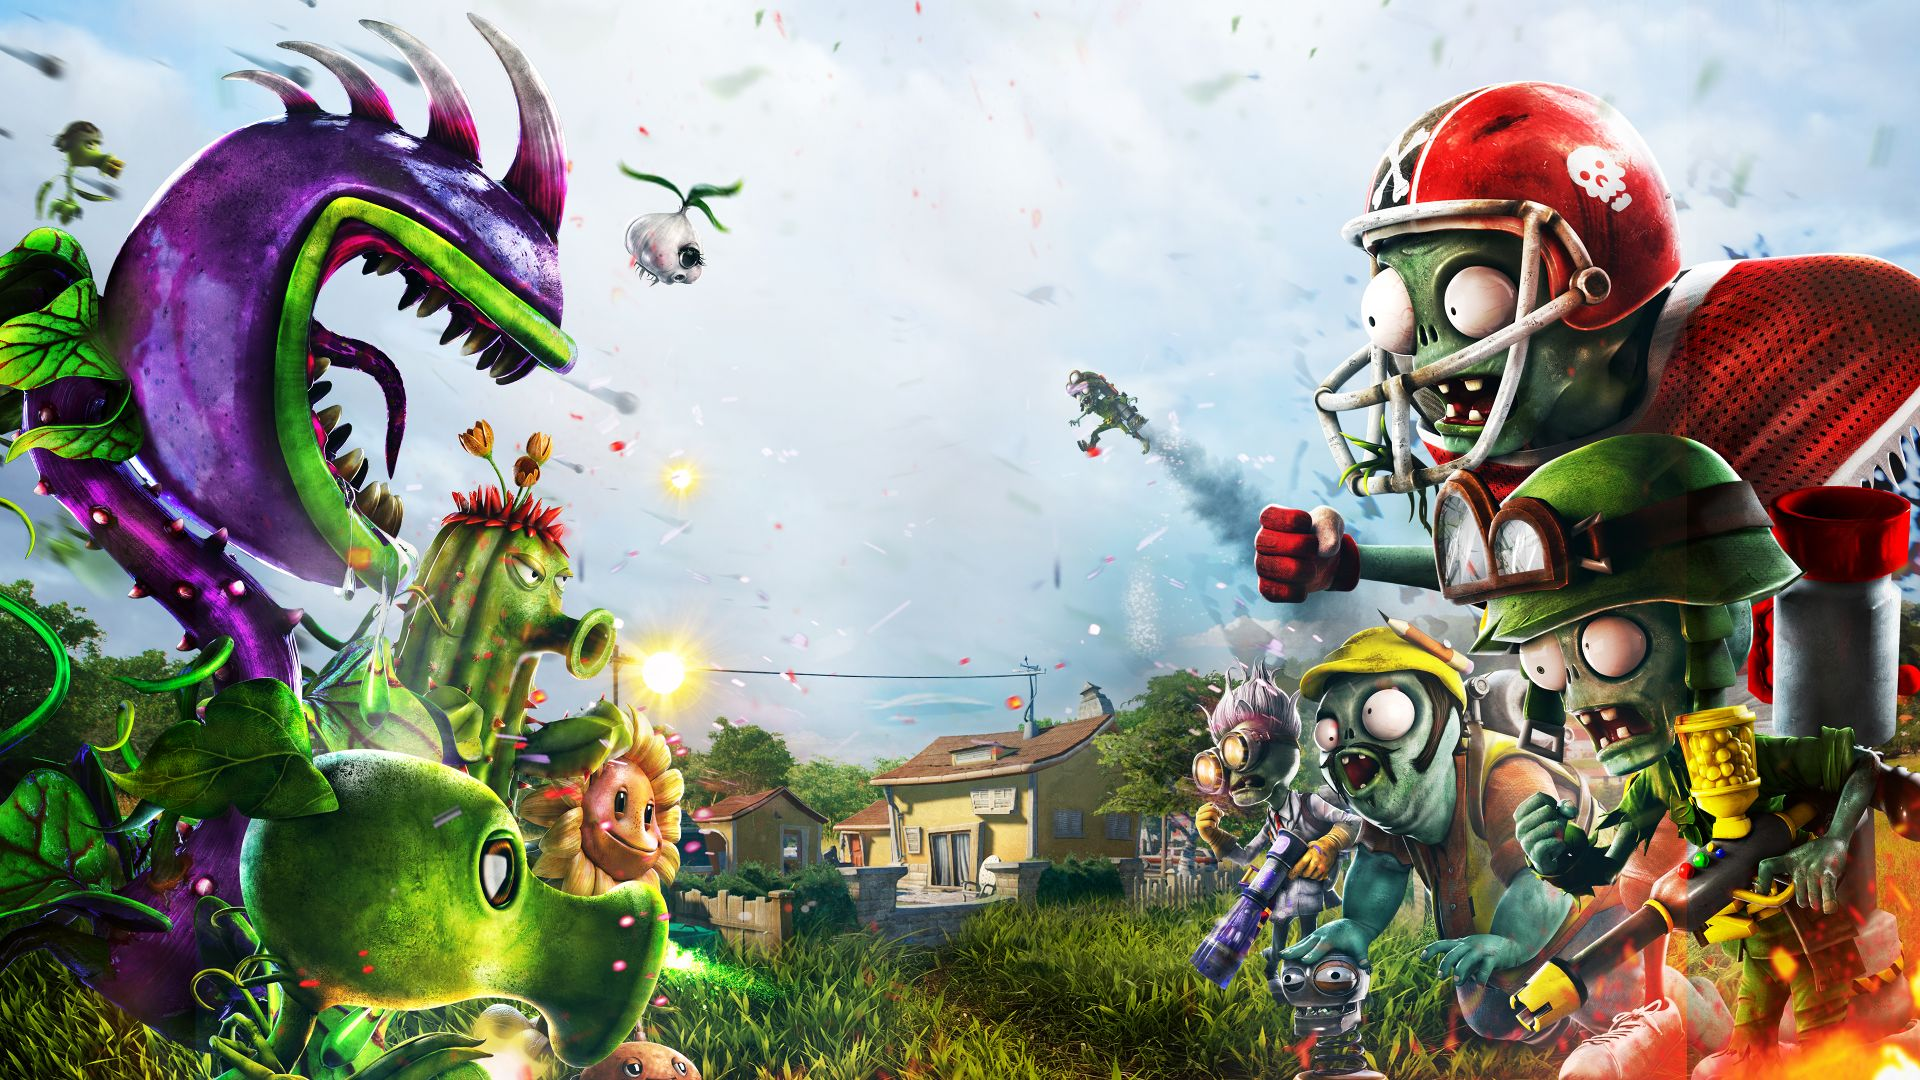 Awesome Plants Vs. Zombies: Garden Warfare 3 Might Have Been Leaked By Amazon    Bleeding Cool News And Rumors Gallery